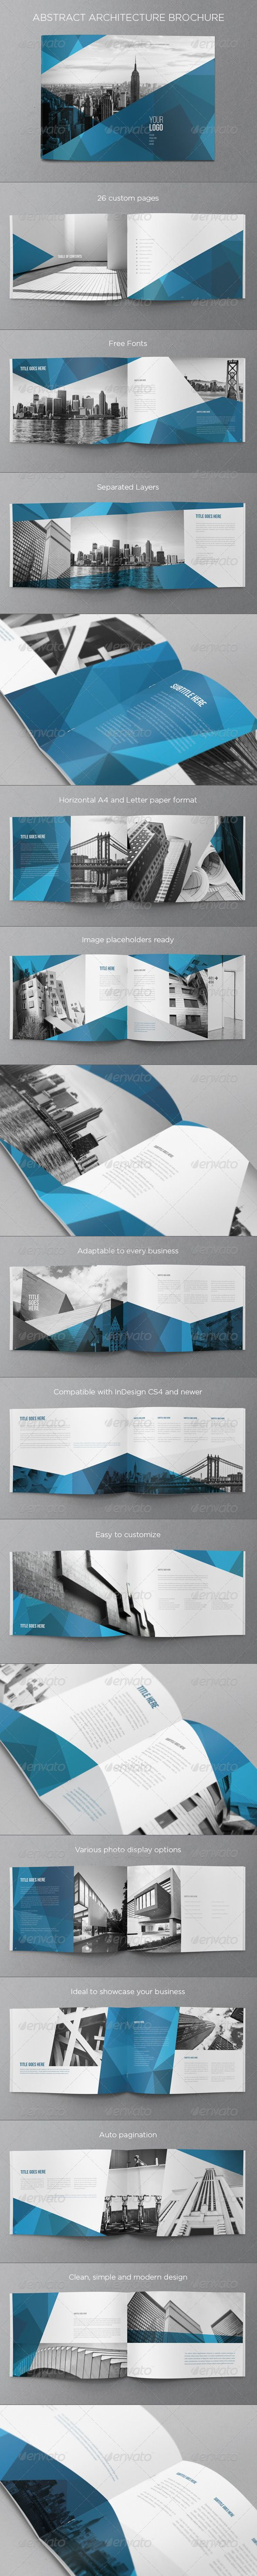 Abstract Architecture Brochure — InDesign INDD #texture #white • Available here → https://graphicriver.net/item/abstract-architecture-brochure/7385718?ref=pxcr